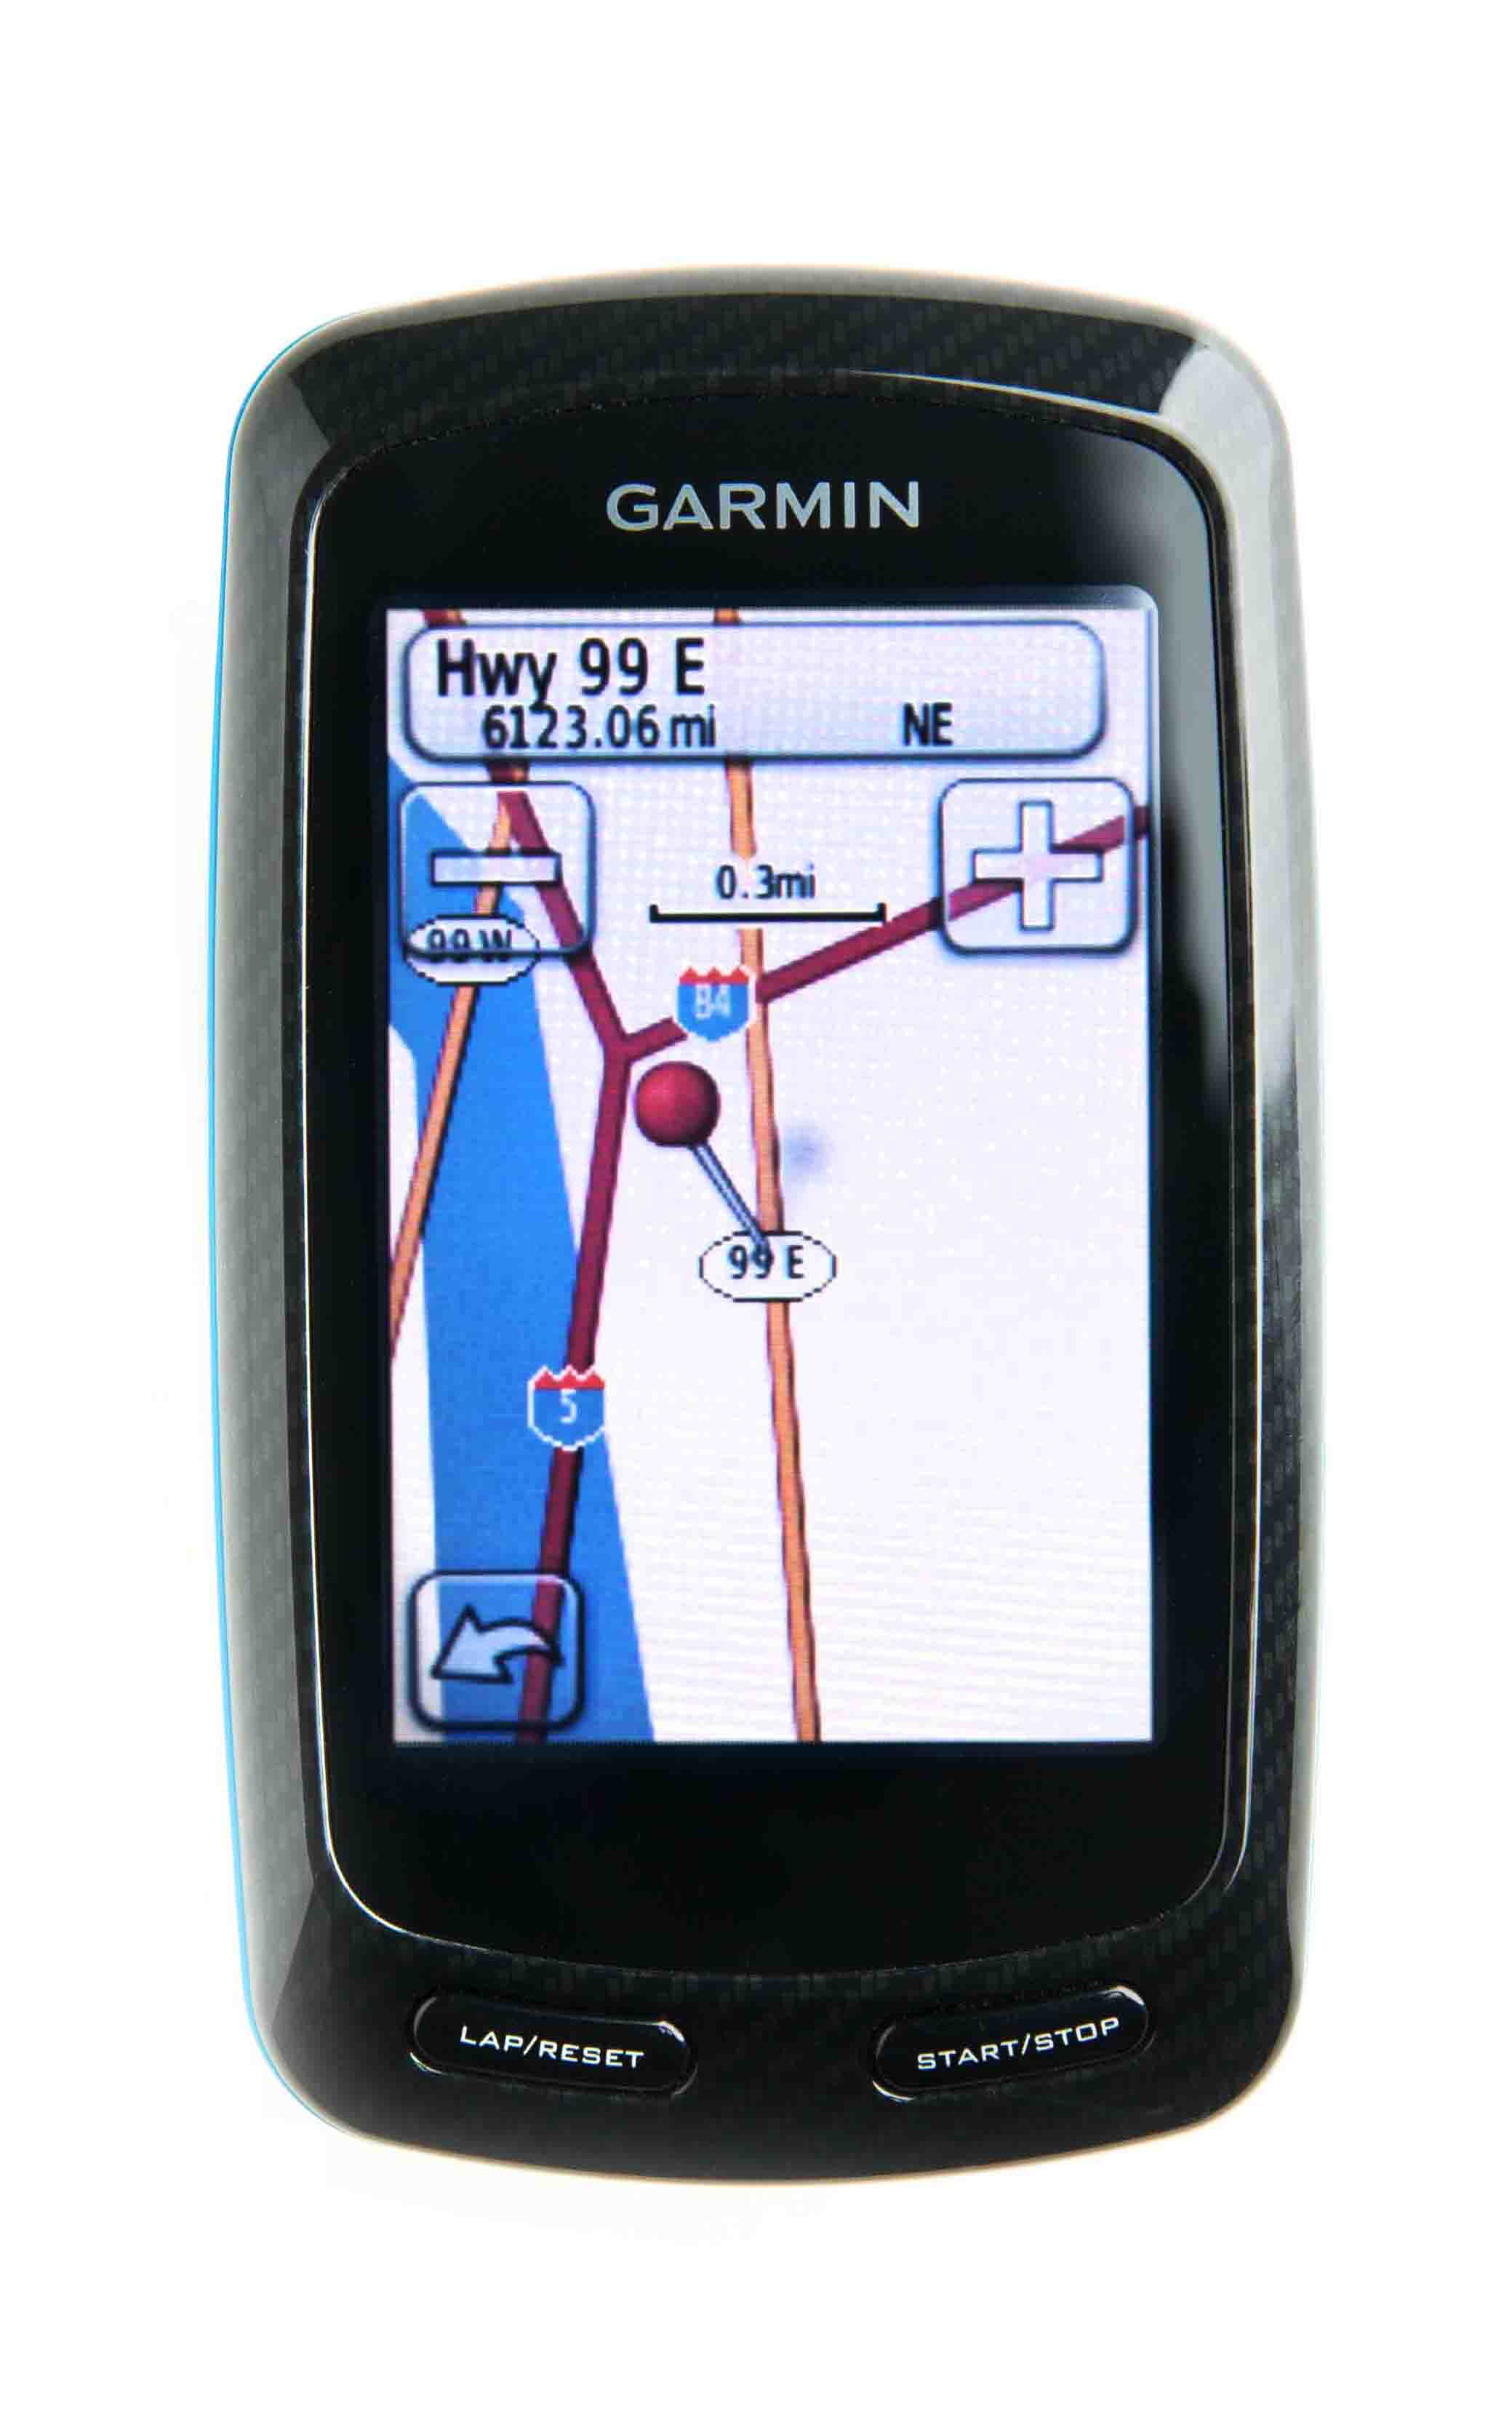 Garmin Edge 800 Bicycling Computer